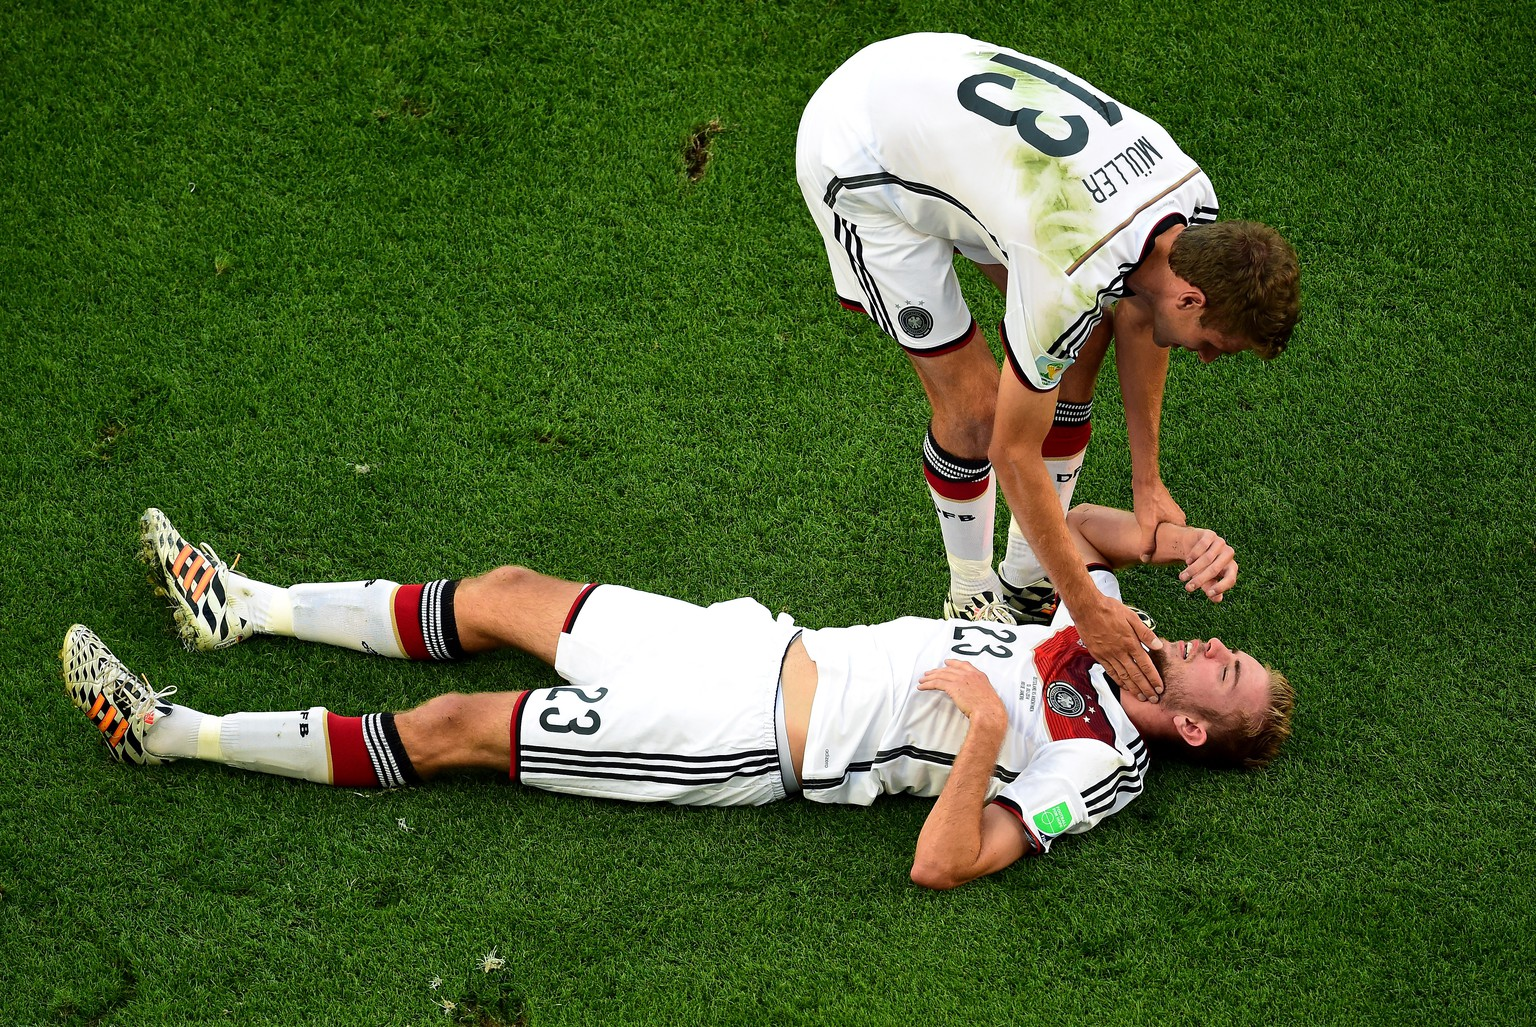 RIO DE JANEIRO, BRAZIL - JULY 13:  Christoph Kramer of Germany lies on the pitch as Thomas Mueller stands over during the 2014 FIFA World Cup Brazil Final match between Germany and Argentina at Maracana on July 13, 2014 in Rio de Janeiro, Brazil.  (Photo by Pool/Getty Images)